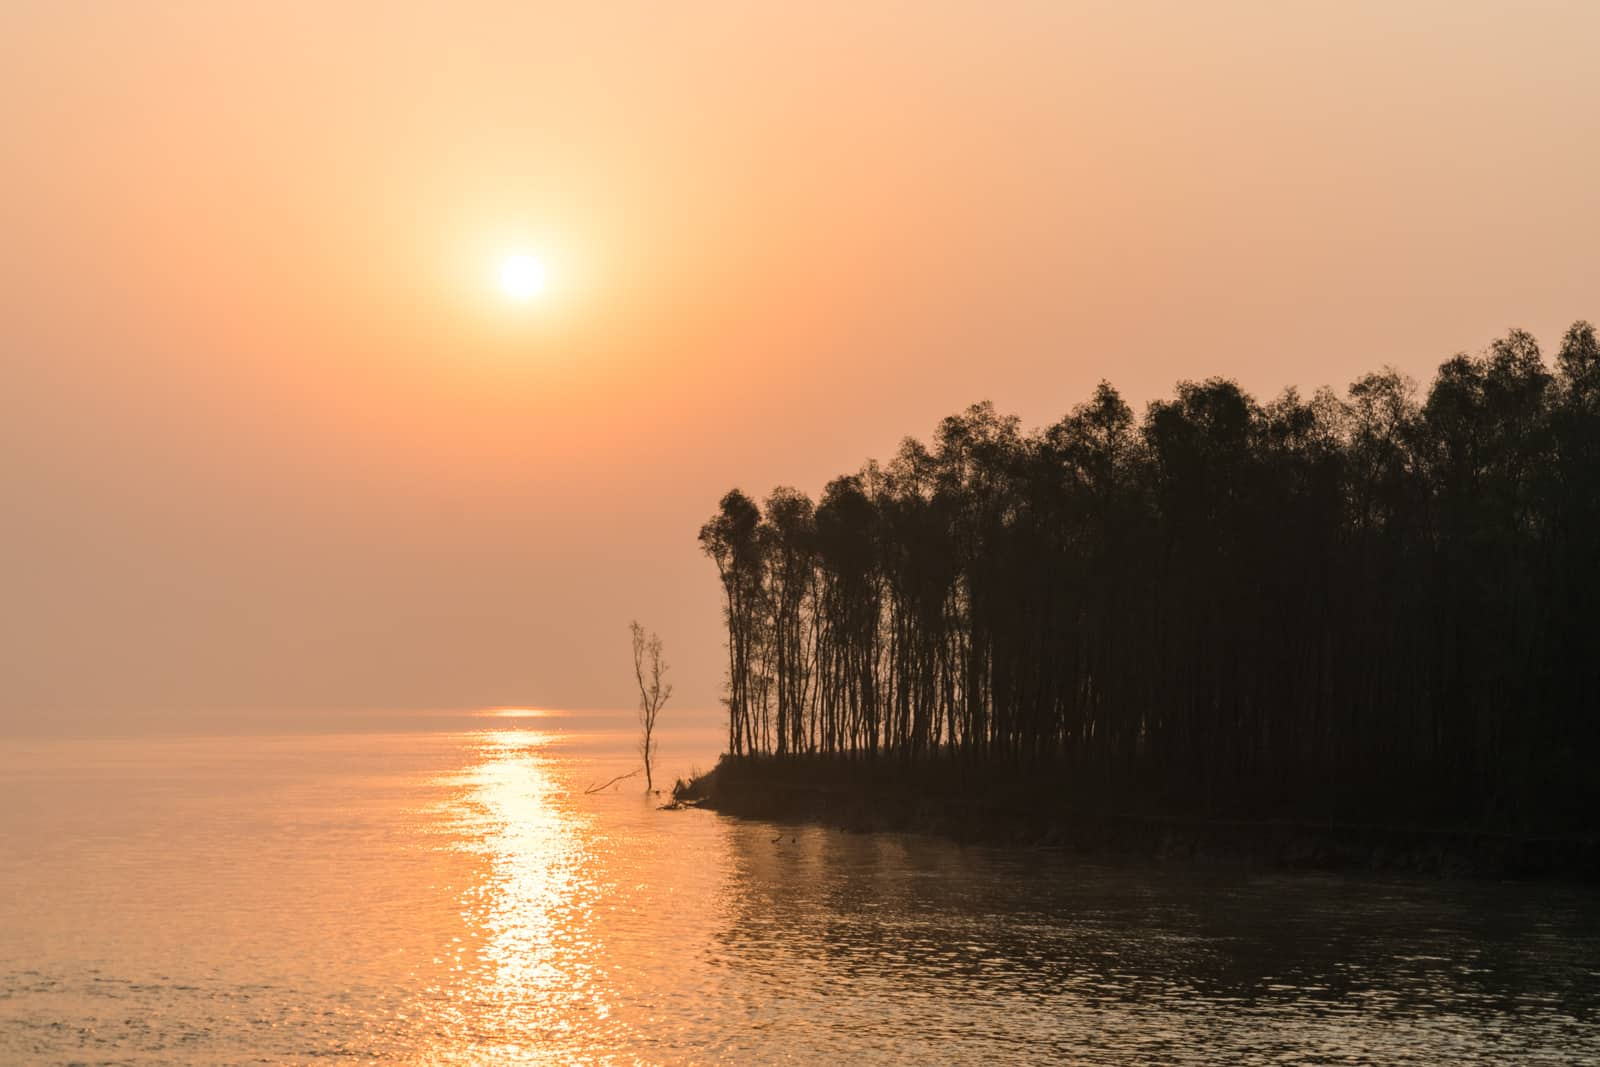 Guide to Nijhum Dwip, Bangladesh - Sunrise over a forested island in the Meghna - Lost With Purpose travel blog